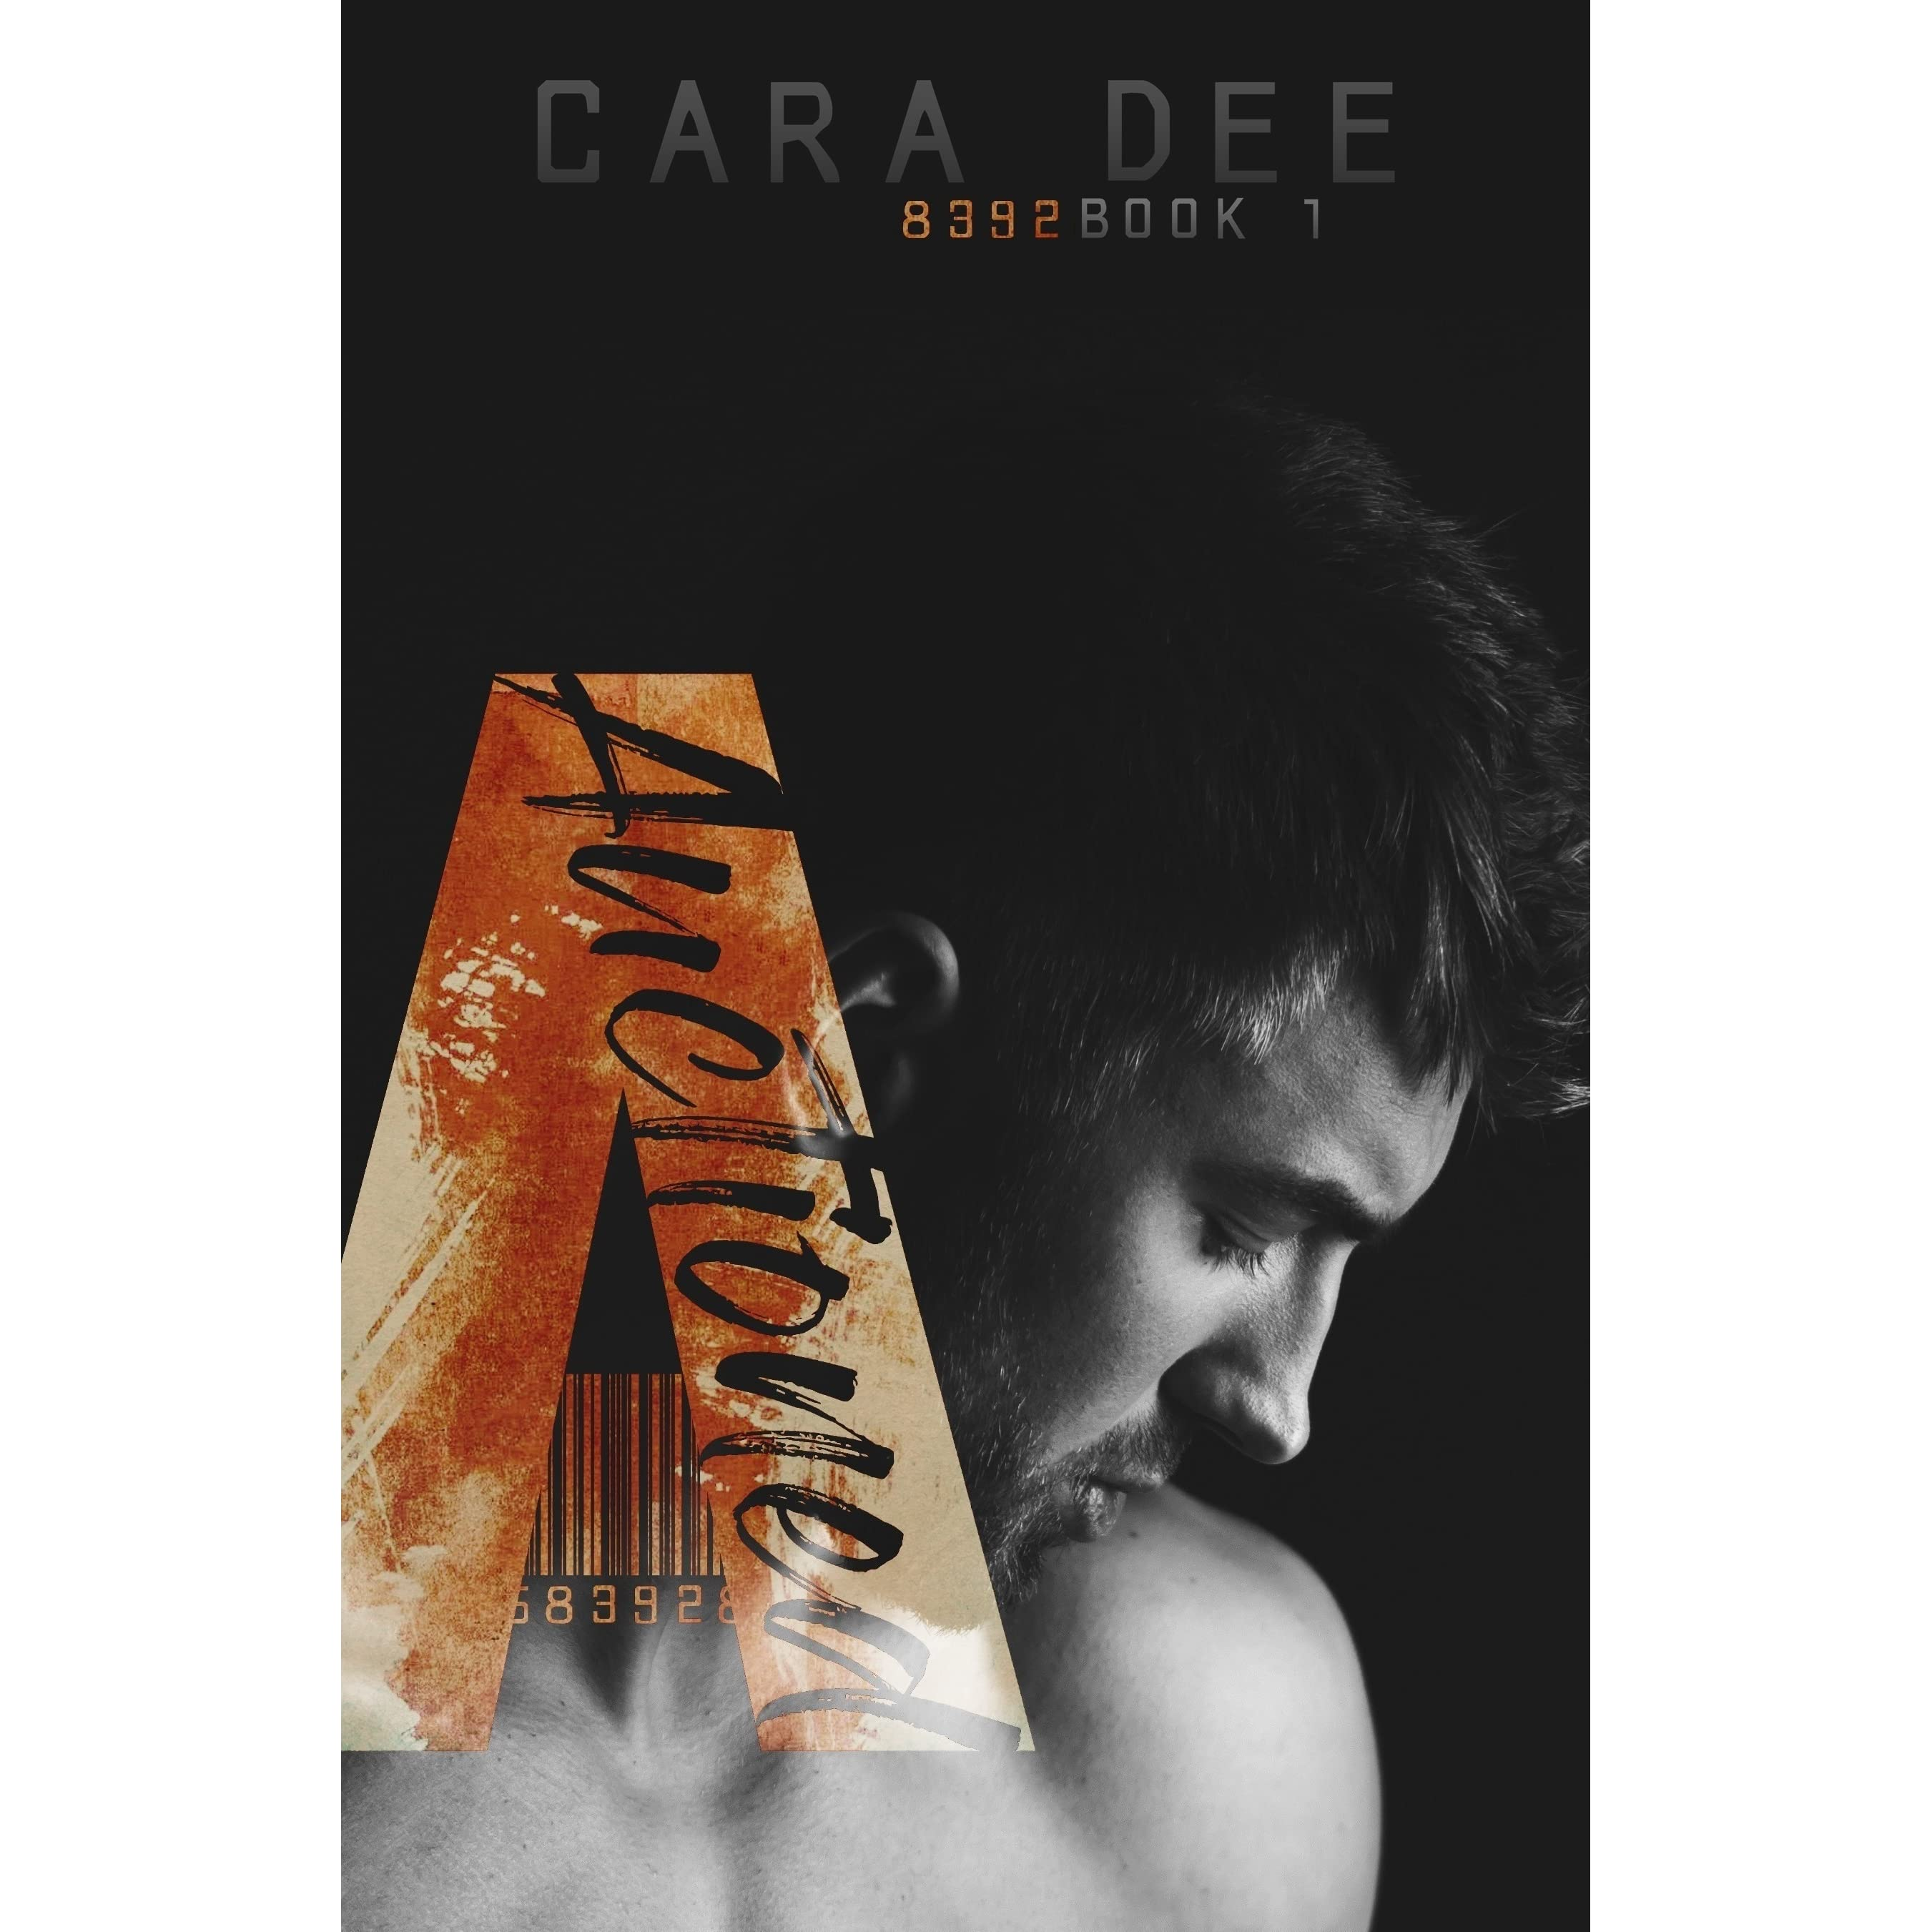 auctioned 8392 1 by cara dee